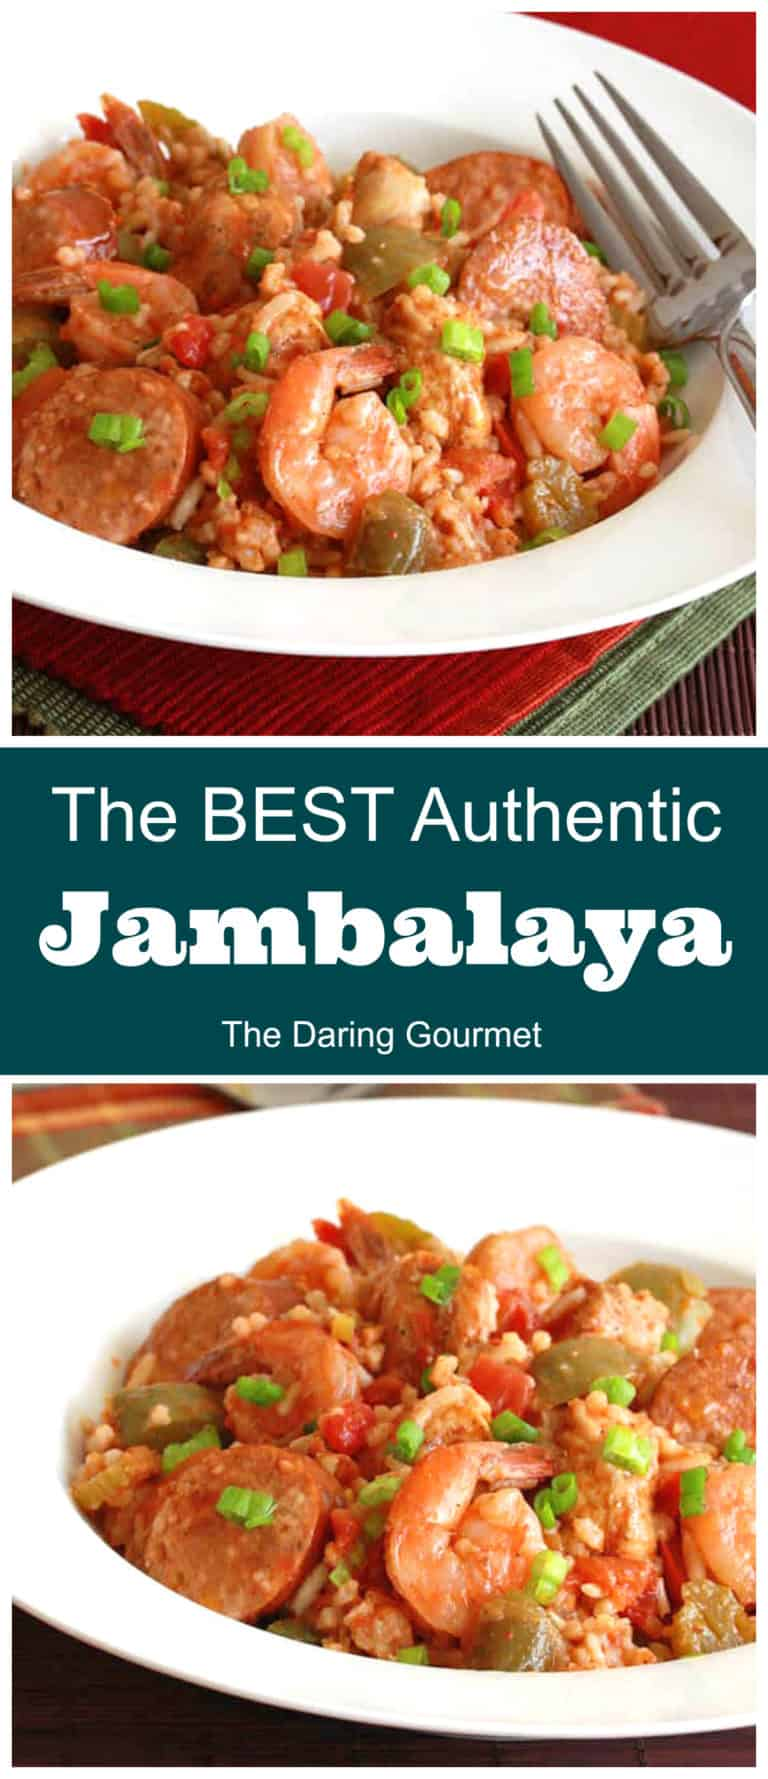 jambalaya recipe best authentic traditional creole cajun new orleans